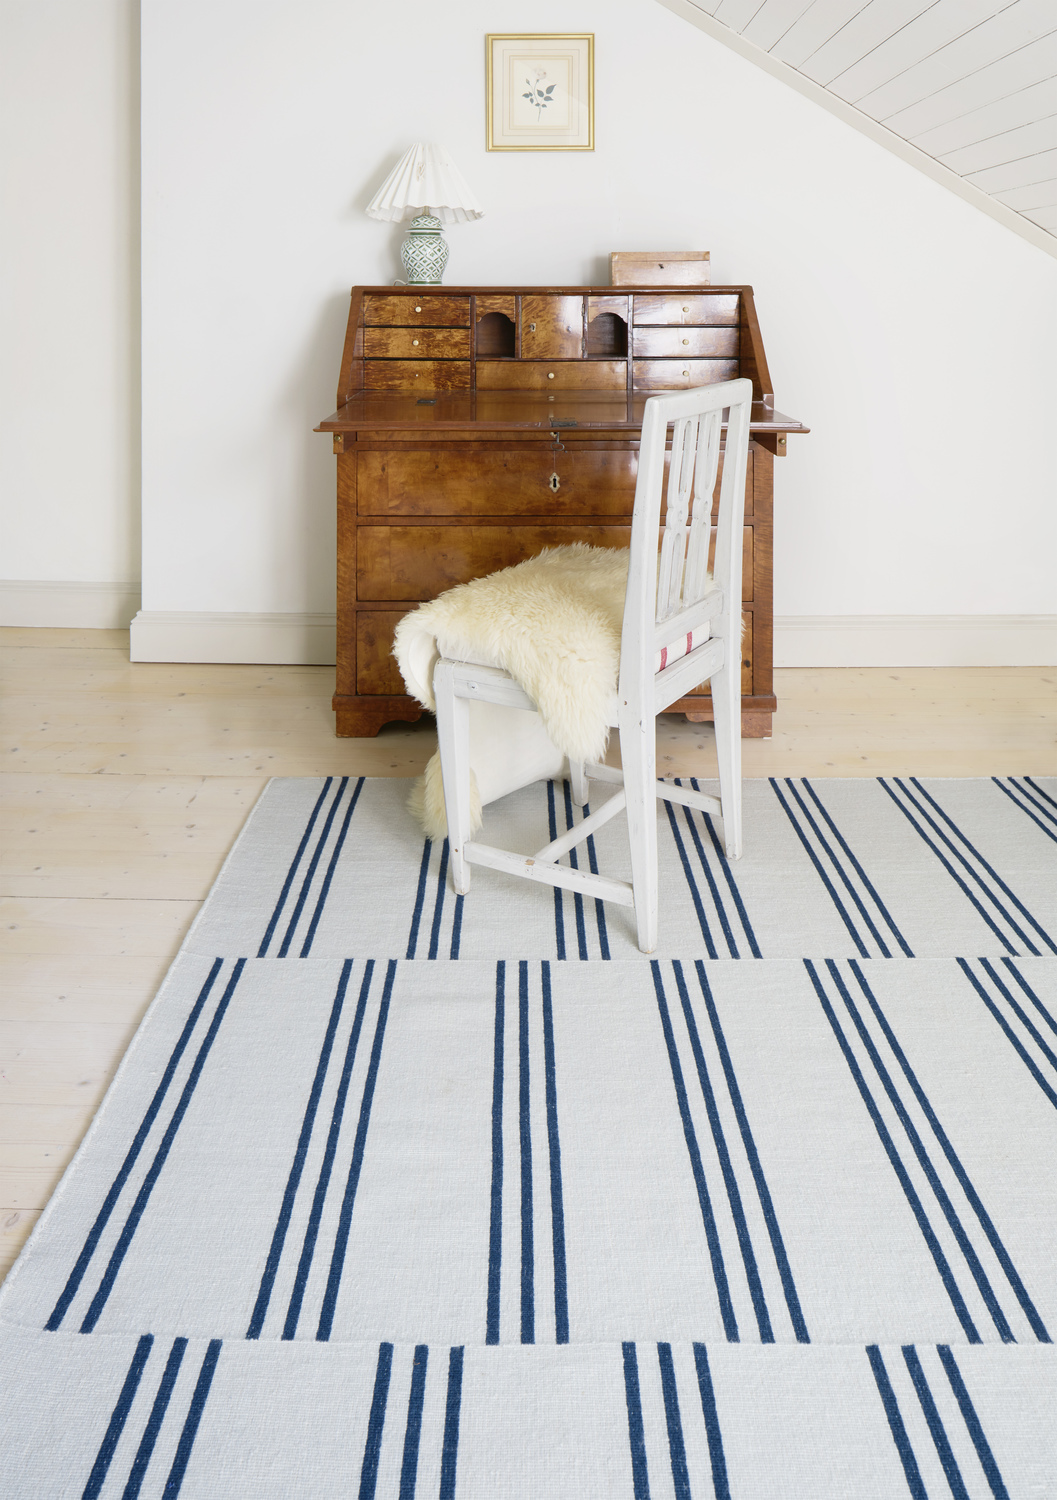 Ake stripes blue